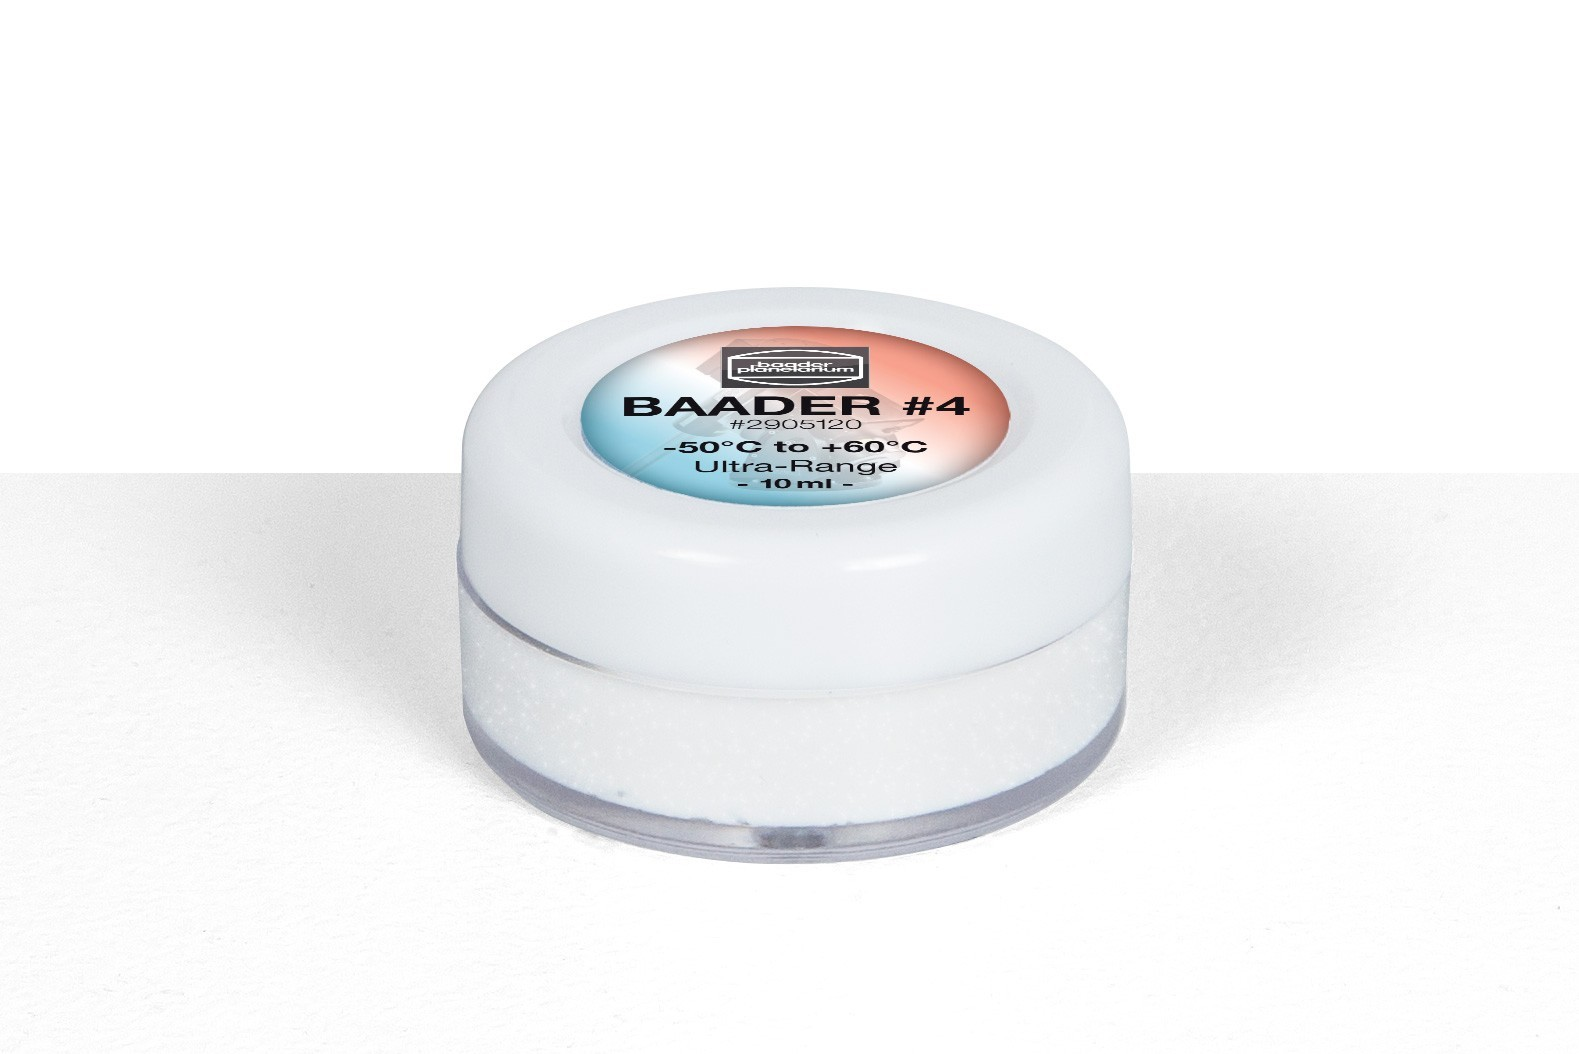 Baader Machine-Grease #4 Ultra-Range, from -50°C up to +60°C - wide stretched synthetic grease with constant viscosity across an extremely large temperature-range. Especially suitable for use in the mirror sliding fittings of SC-telescop